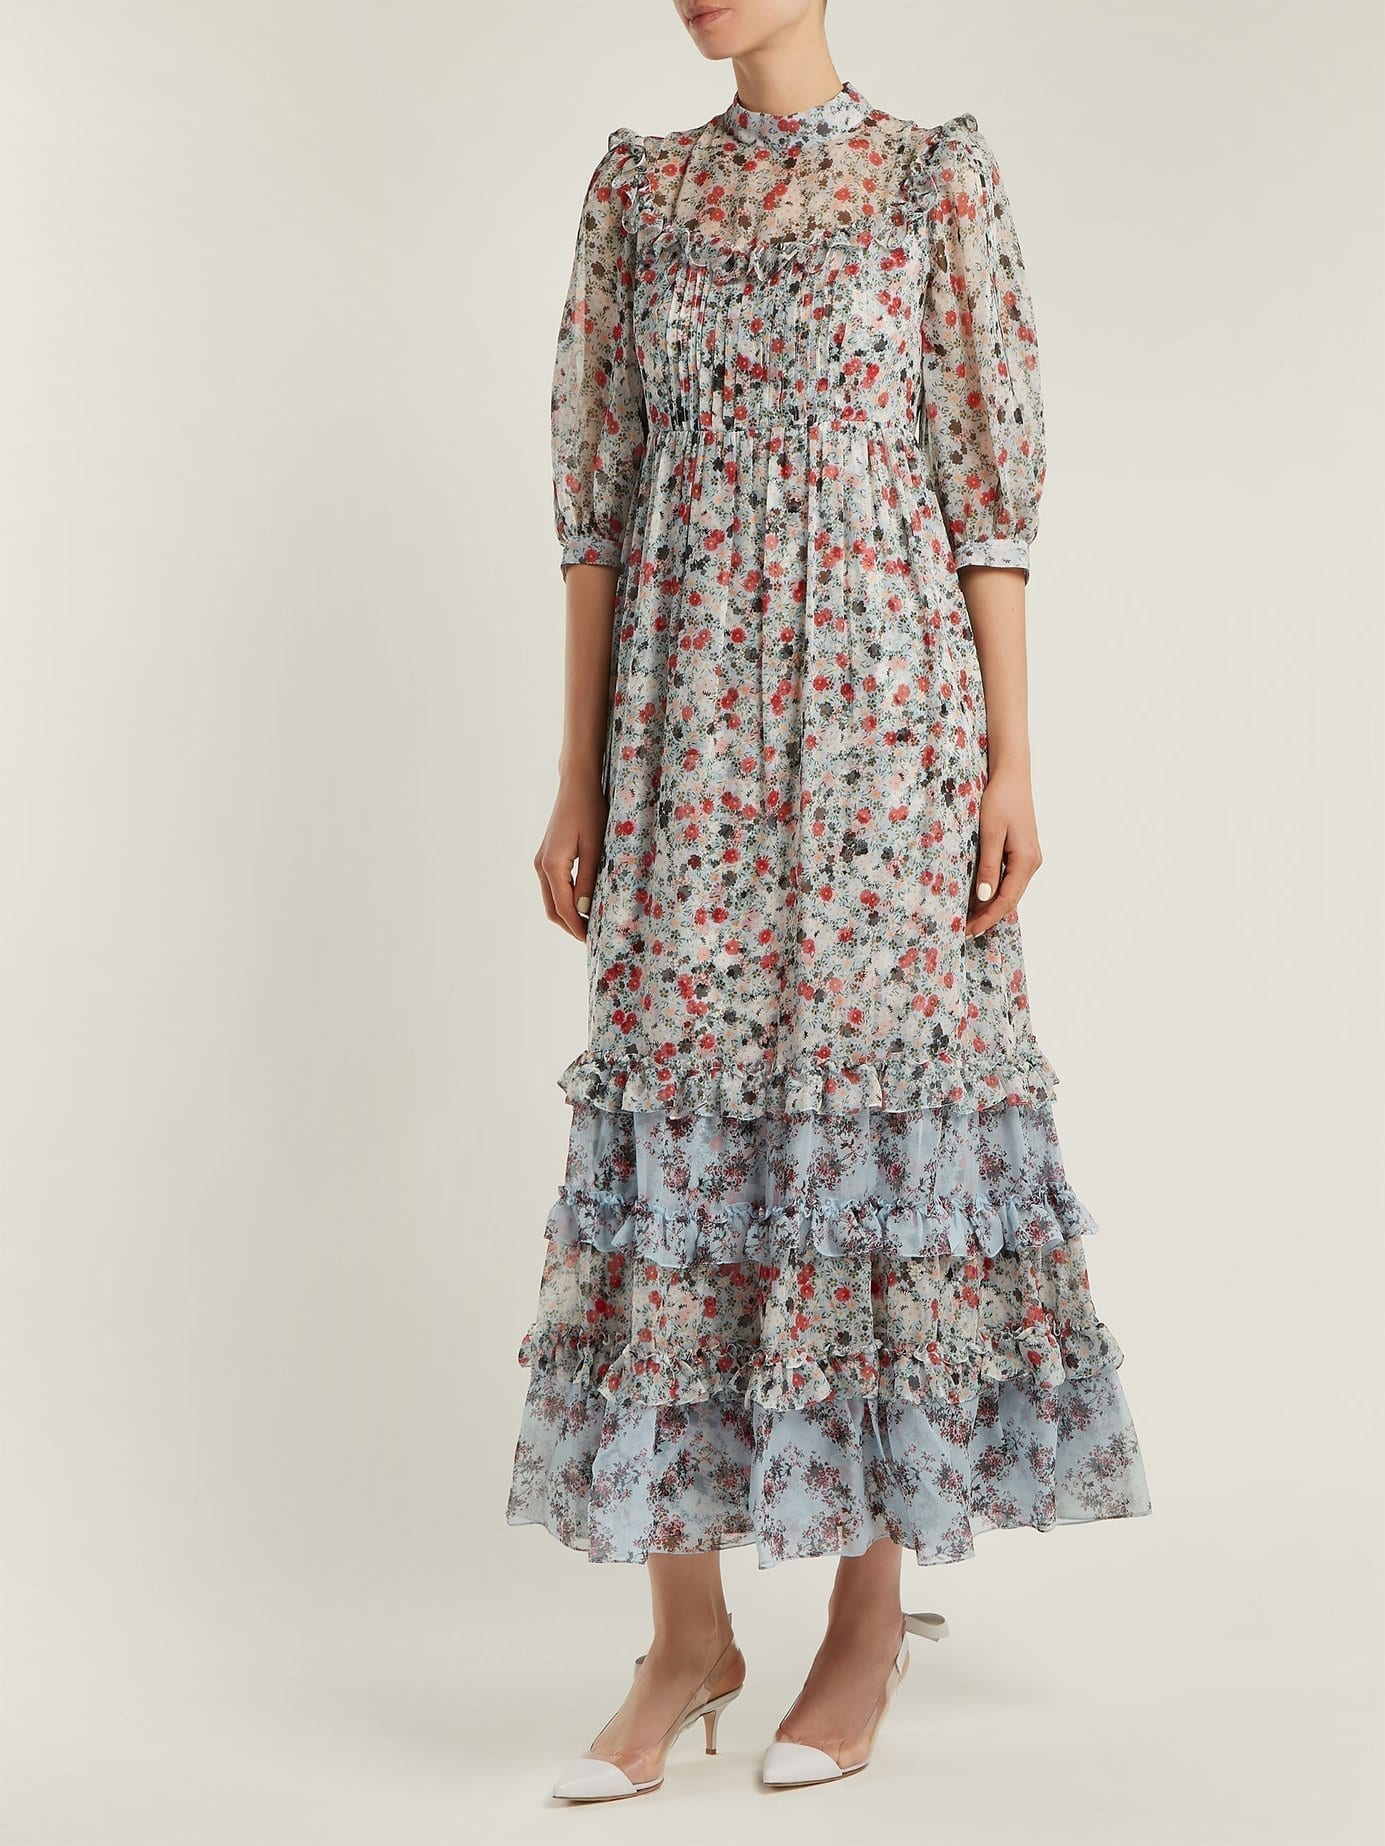 ERDEM Tricia Keiko Disty Print Silk Voile Multicolored Dress